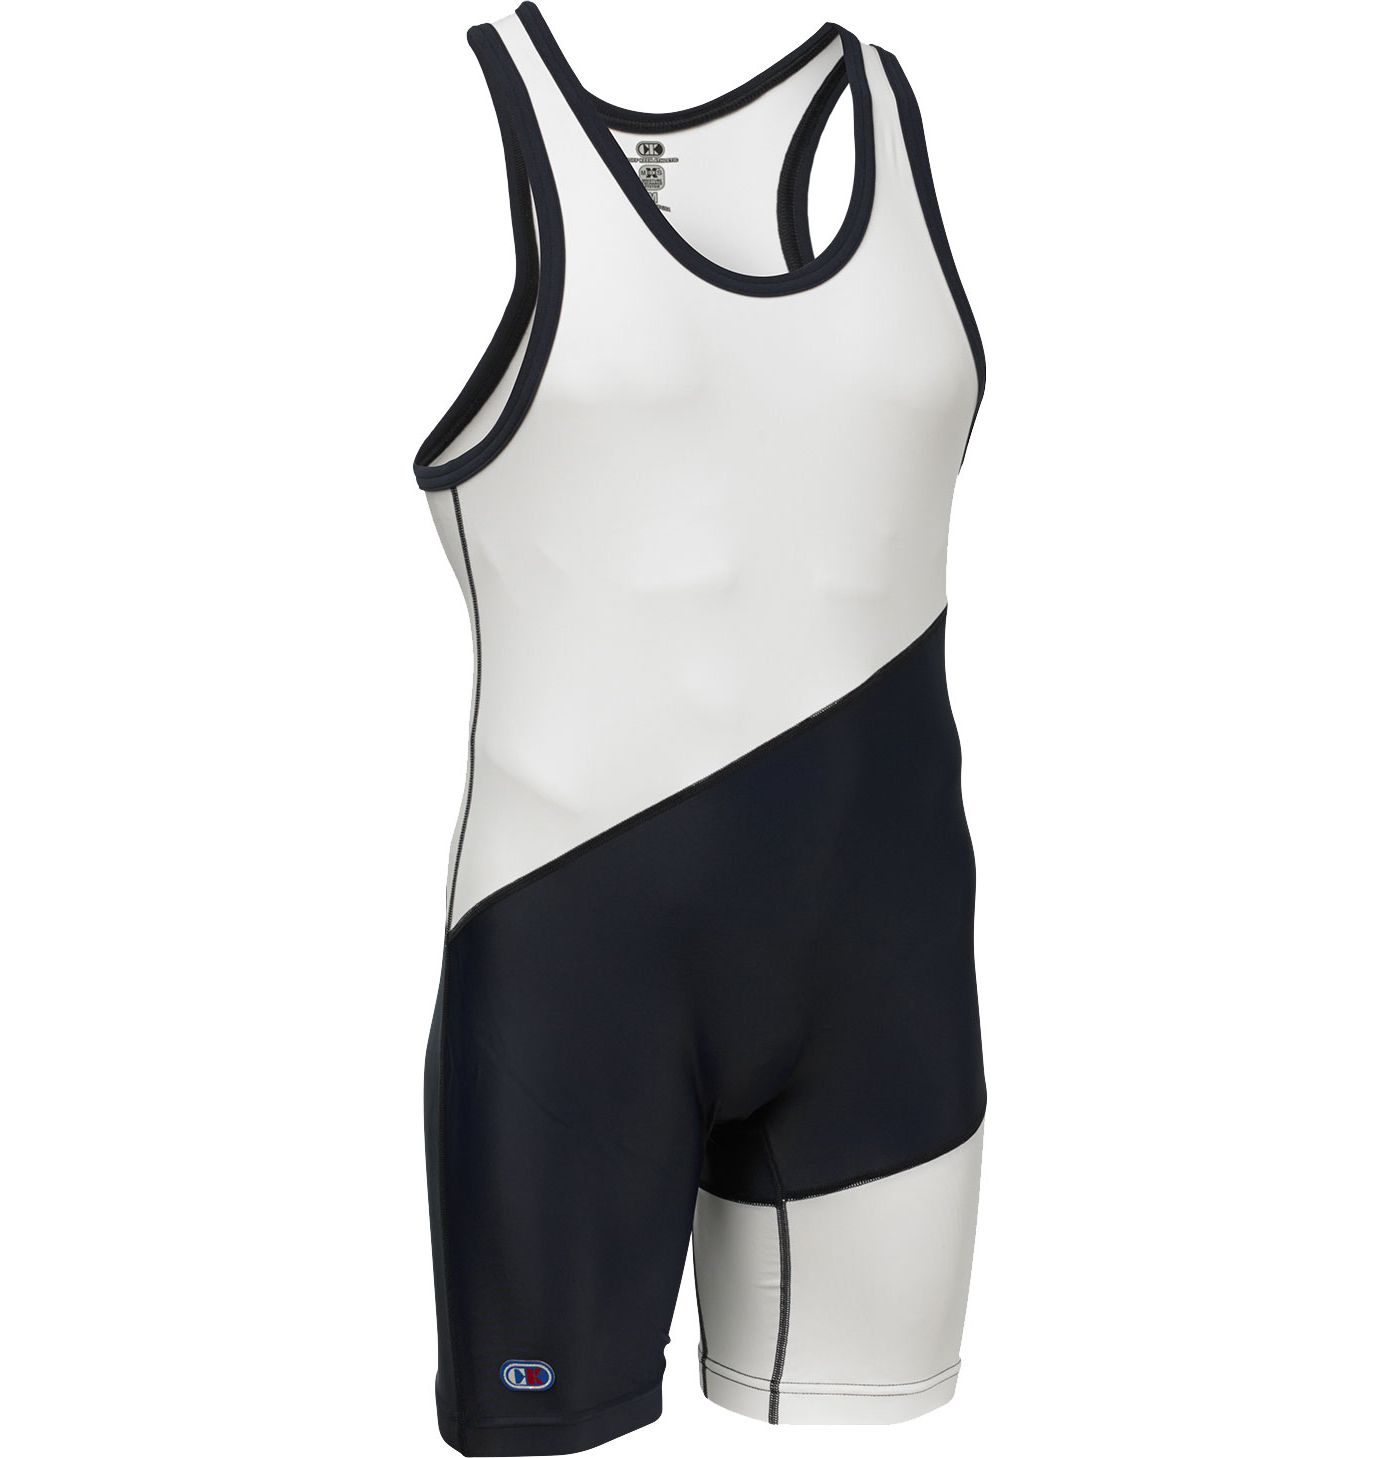 Cliff Keen The Escape Compression Gear Wrestling Singlet